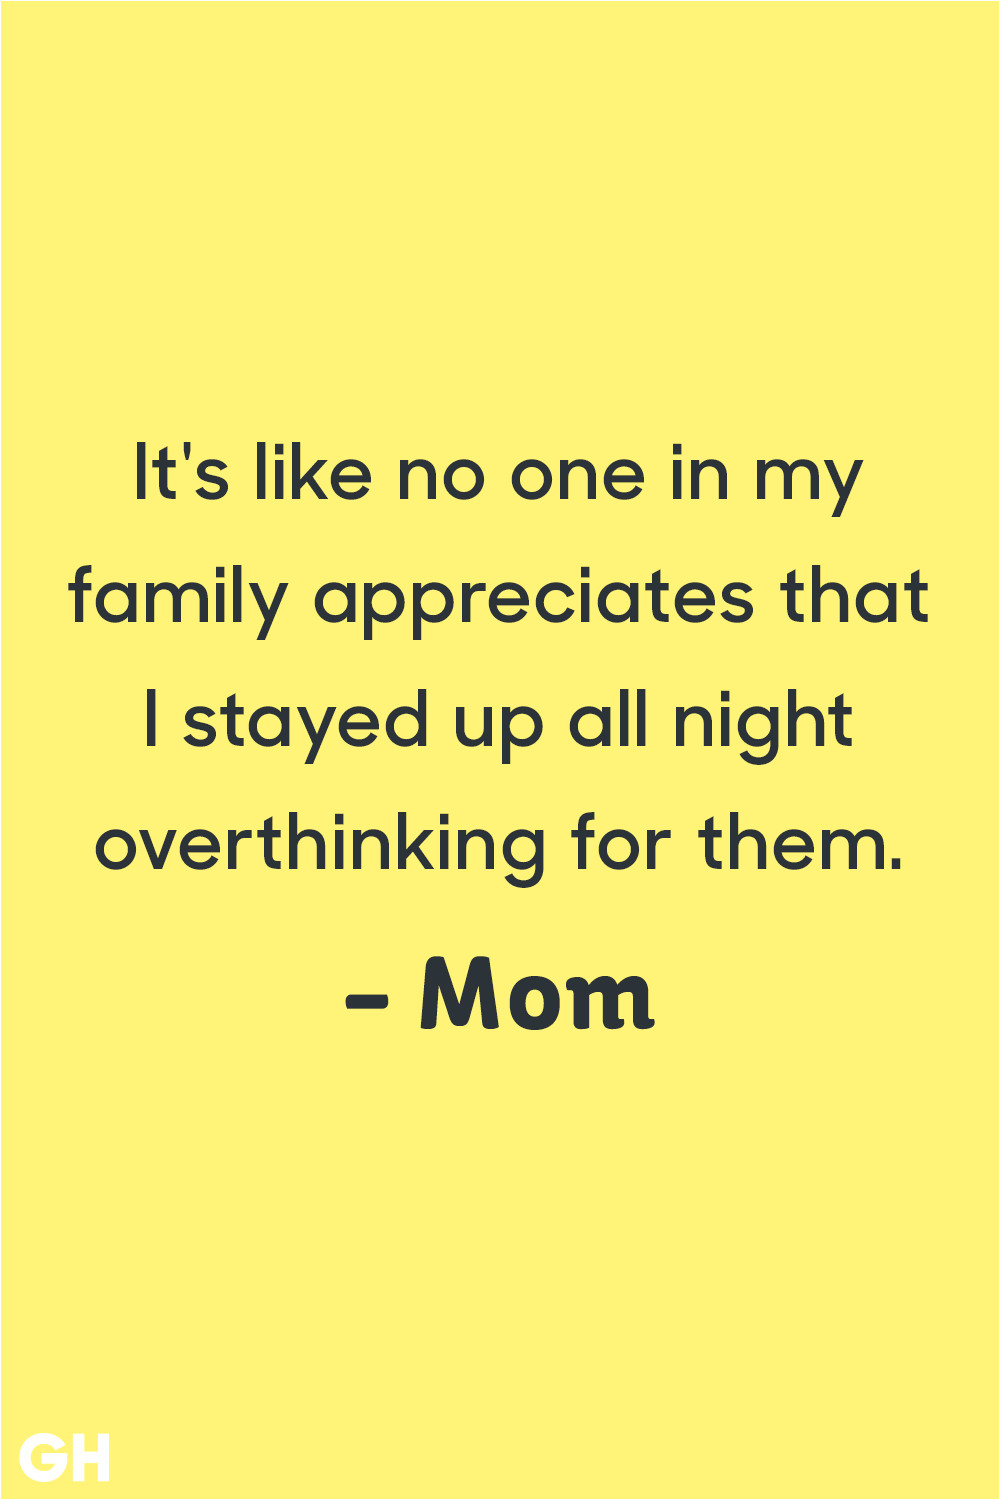 funny parenting quotes overthinking 1532110406 png